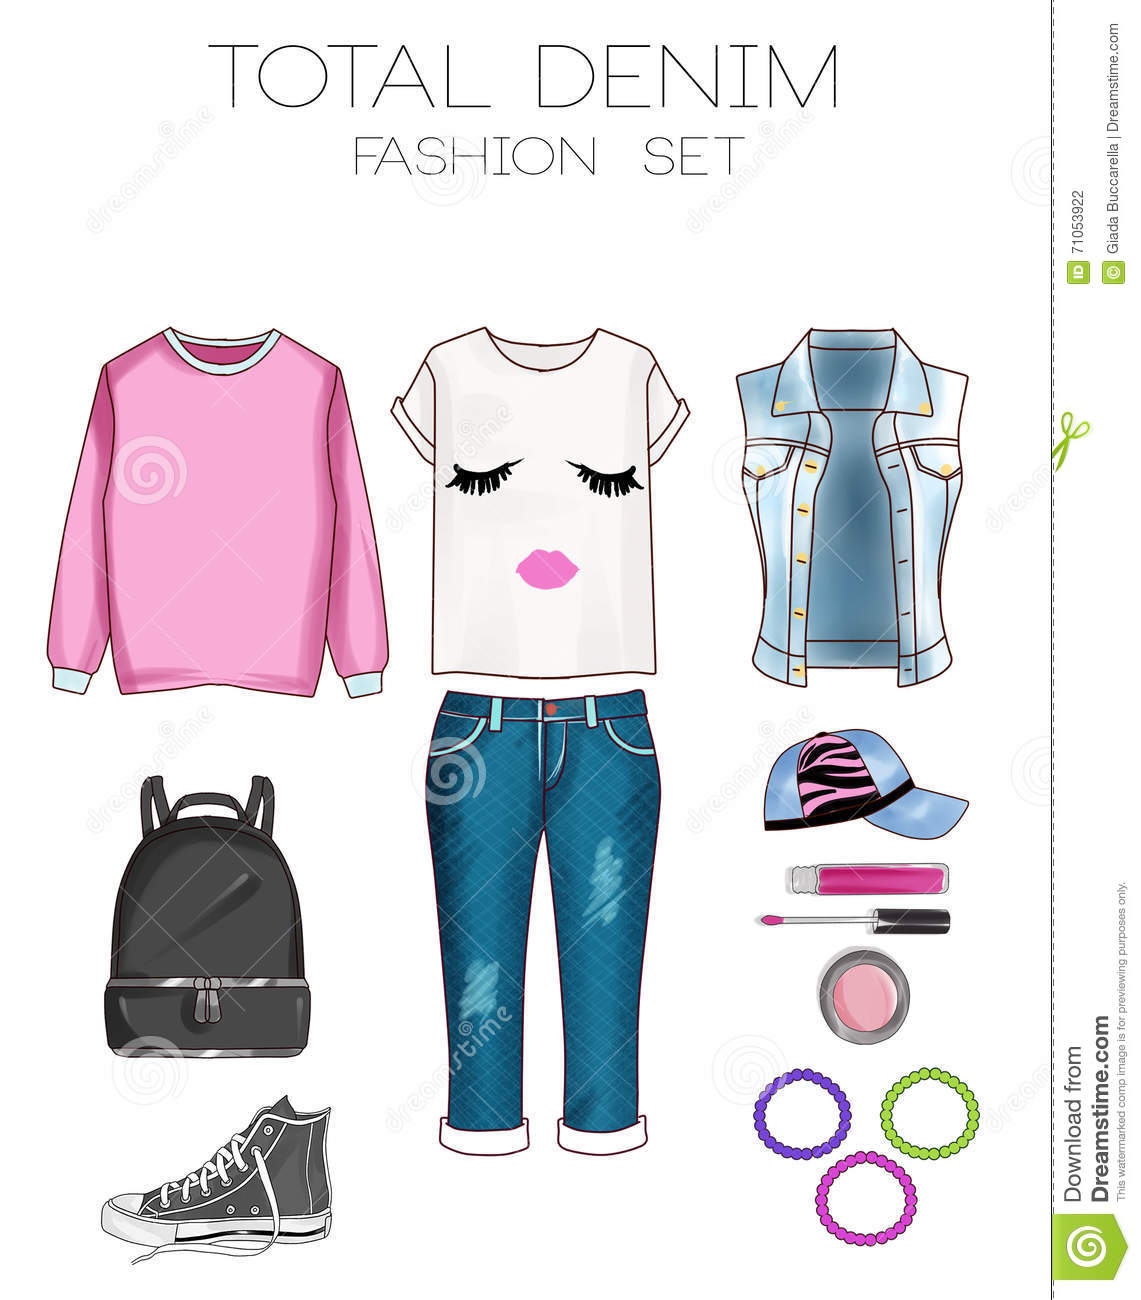 53ec8fcc43e0 Fashion set of woman s clothes, accessories, and shoes clip art collection